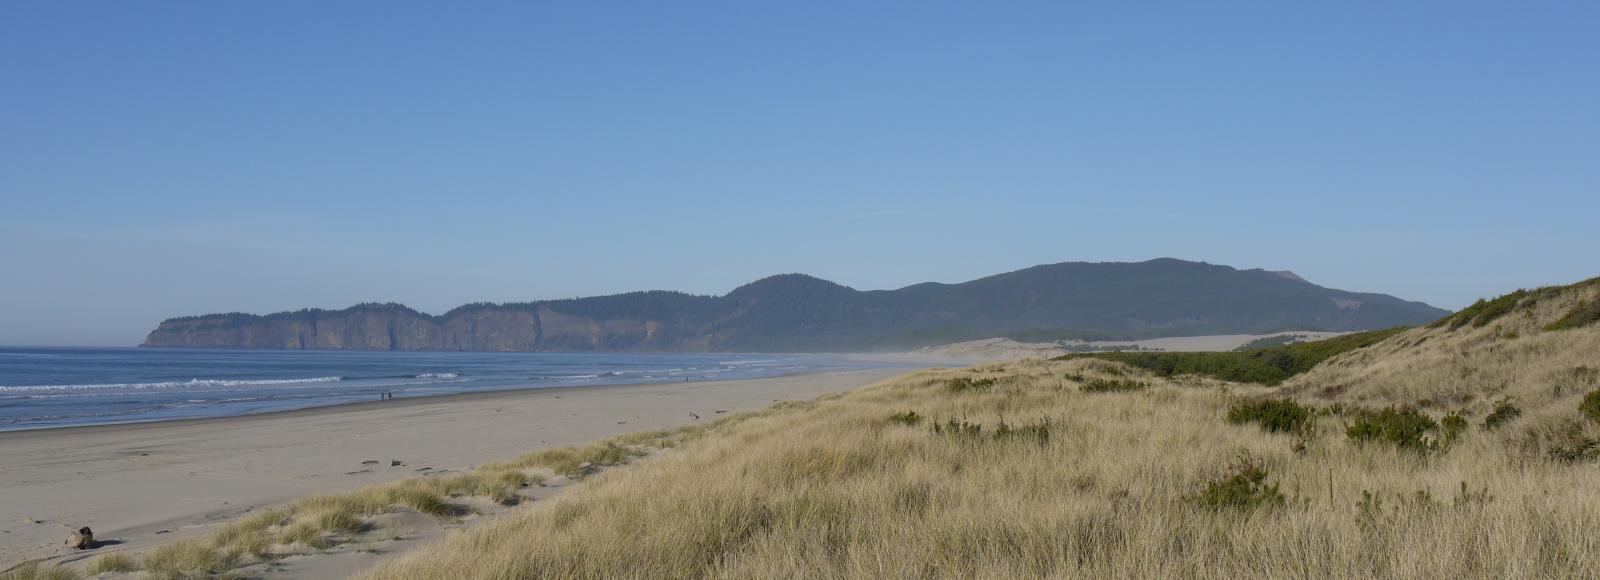 Sand Lake estuary. A yellow grassy hill in front of a beach. In the background are hills and cliffs.